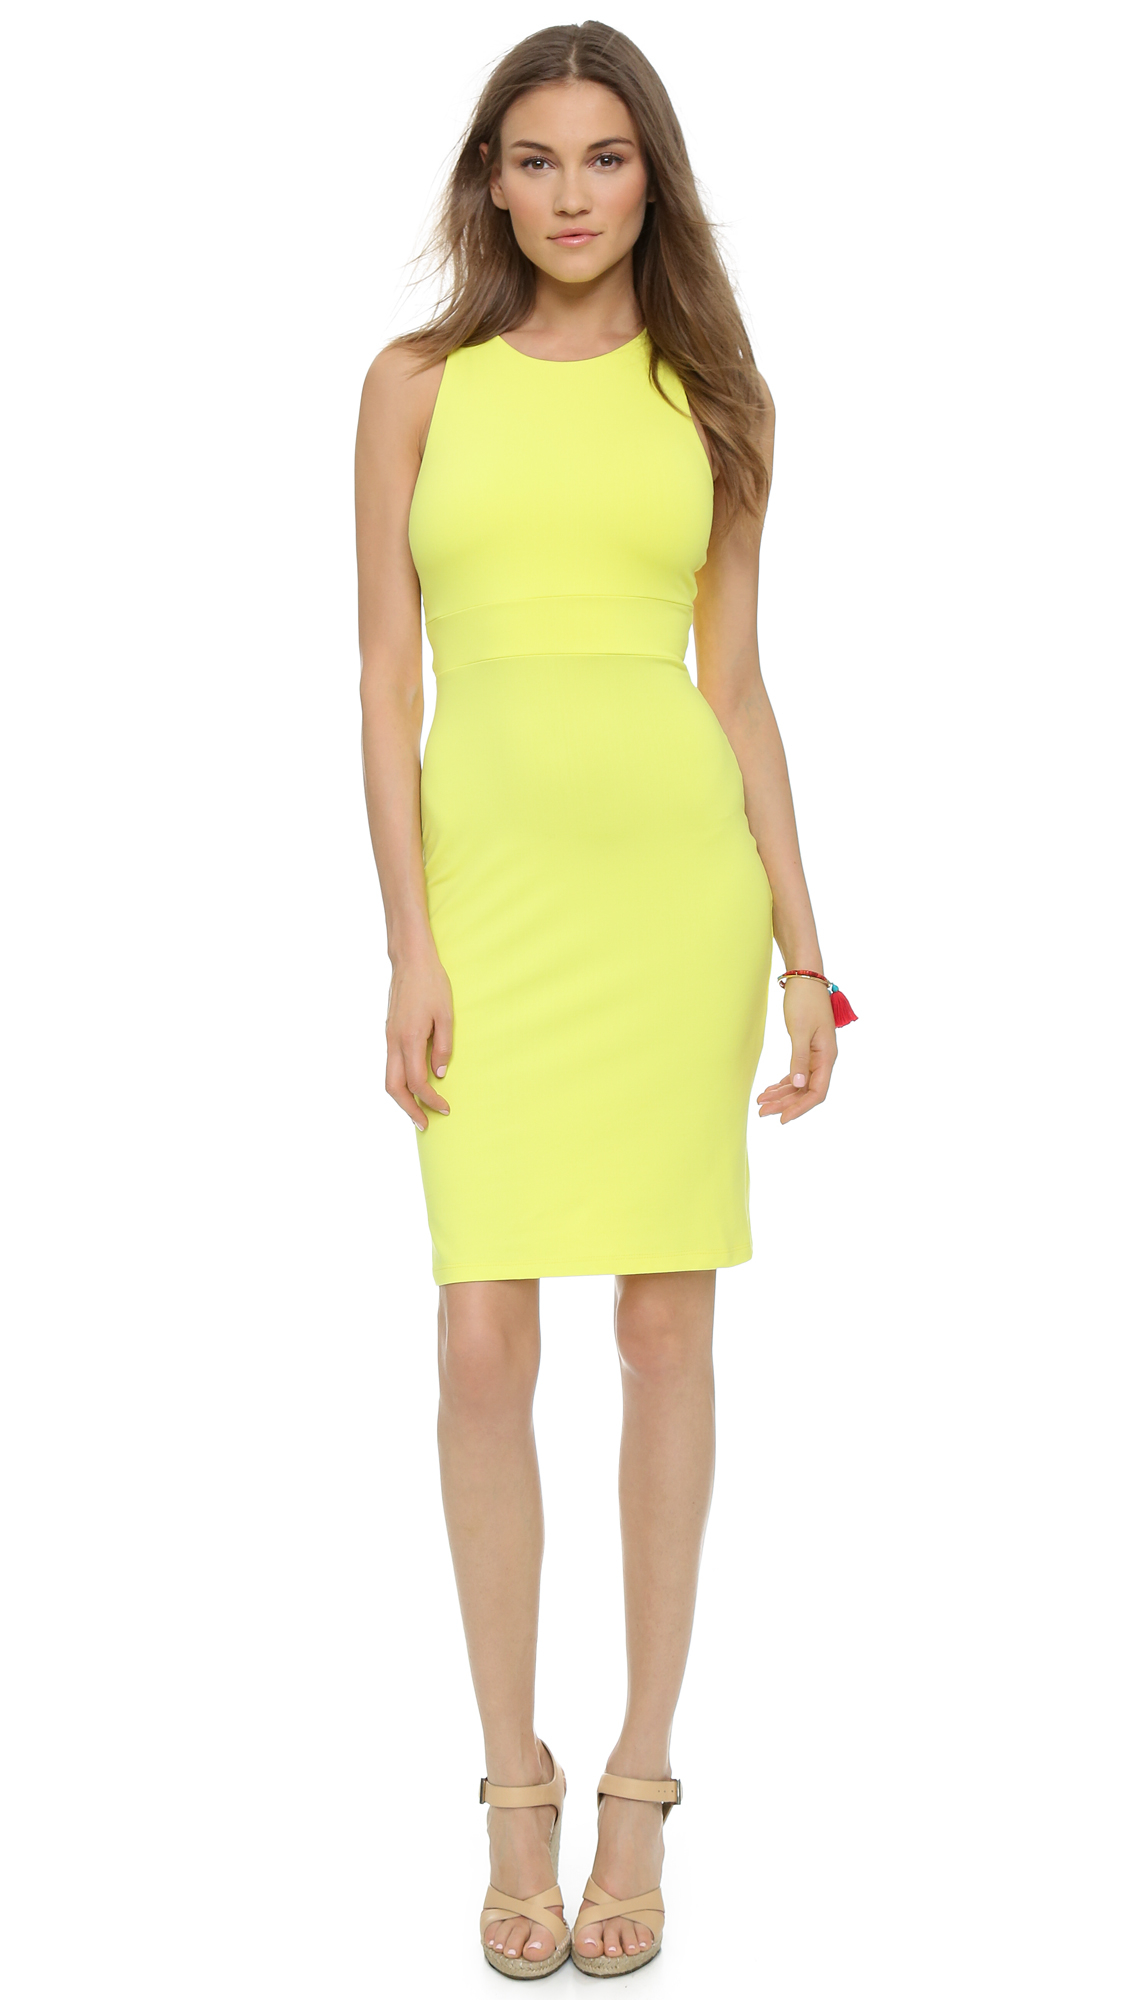 Womens Yellow Dress Photo Album - The Fashions Of Paradise